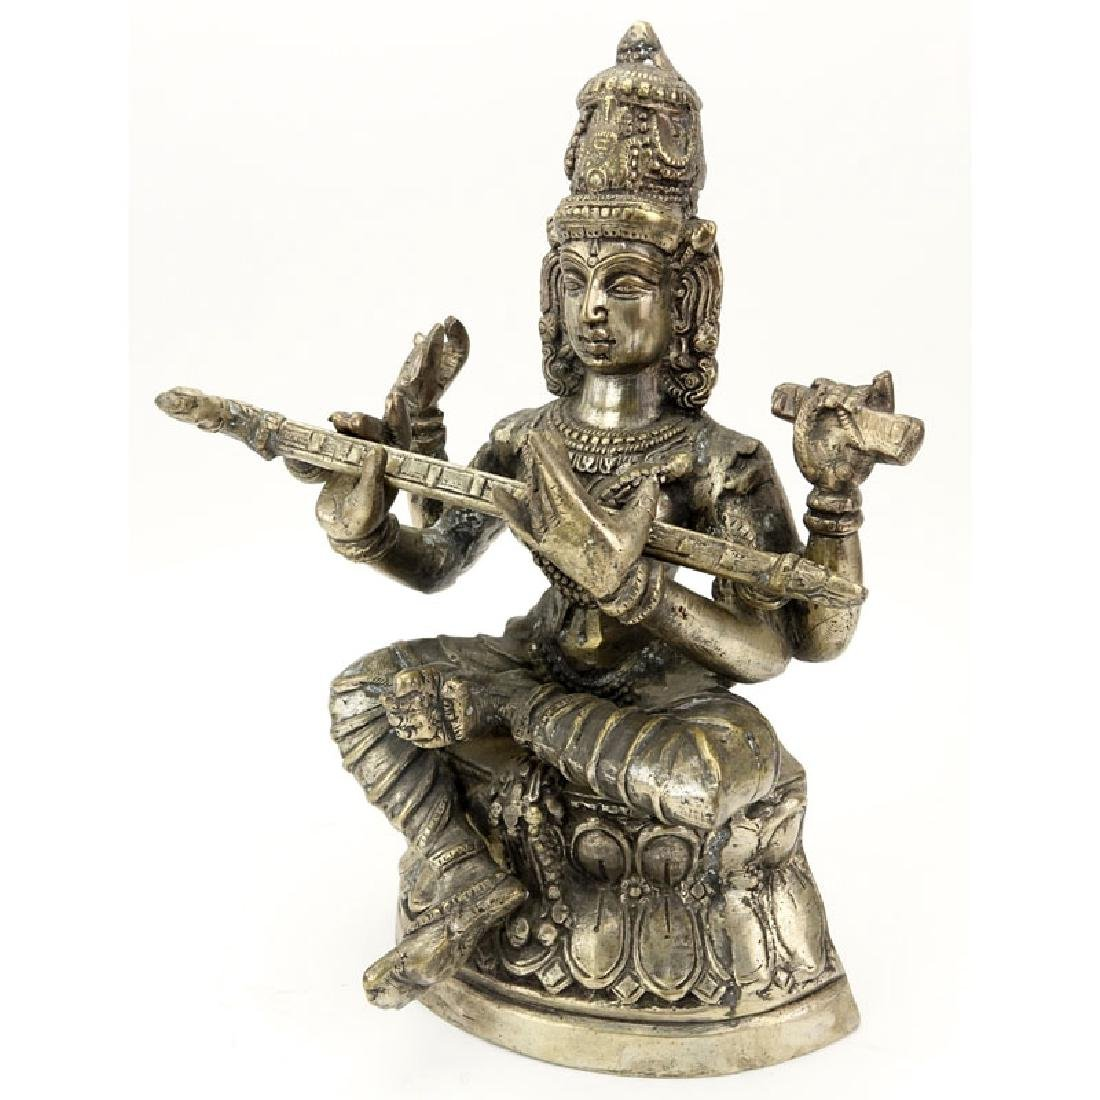 20th Century Hindu Bronze Sculpture of a Seated Goddess